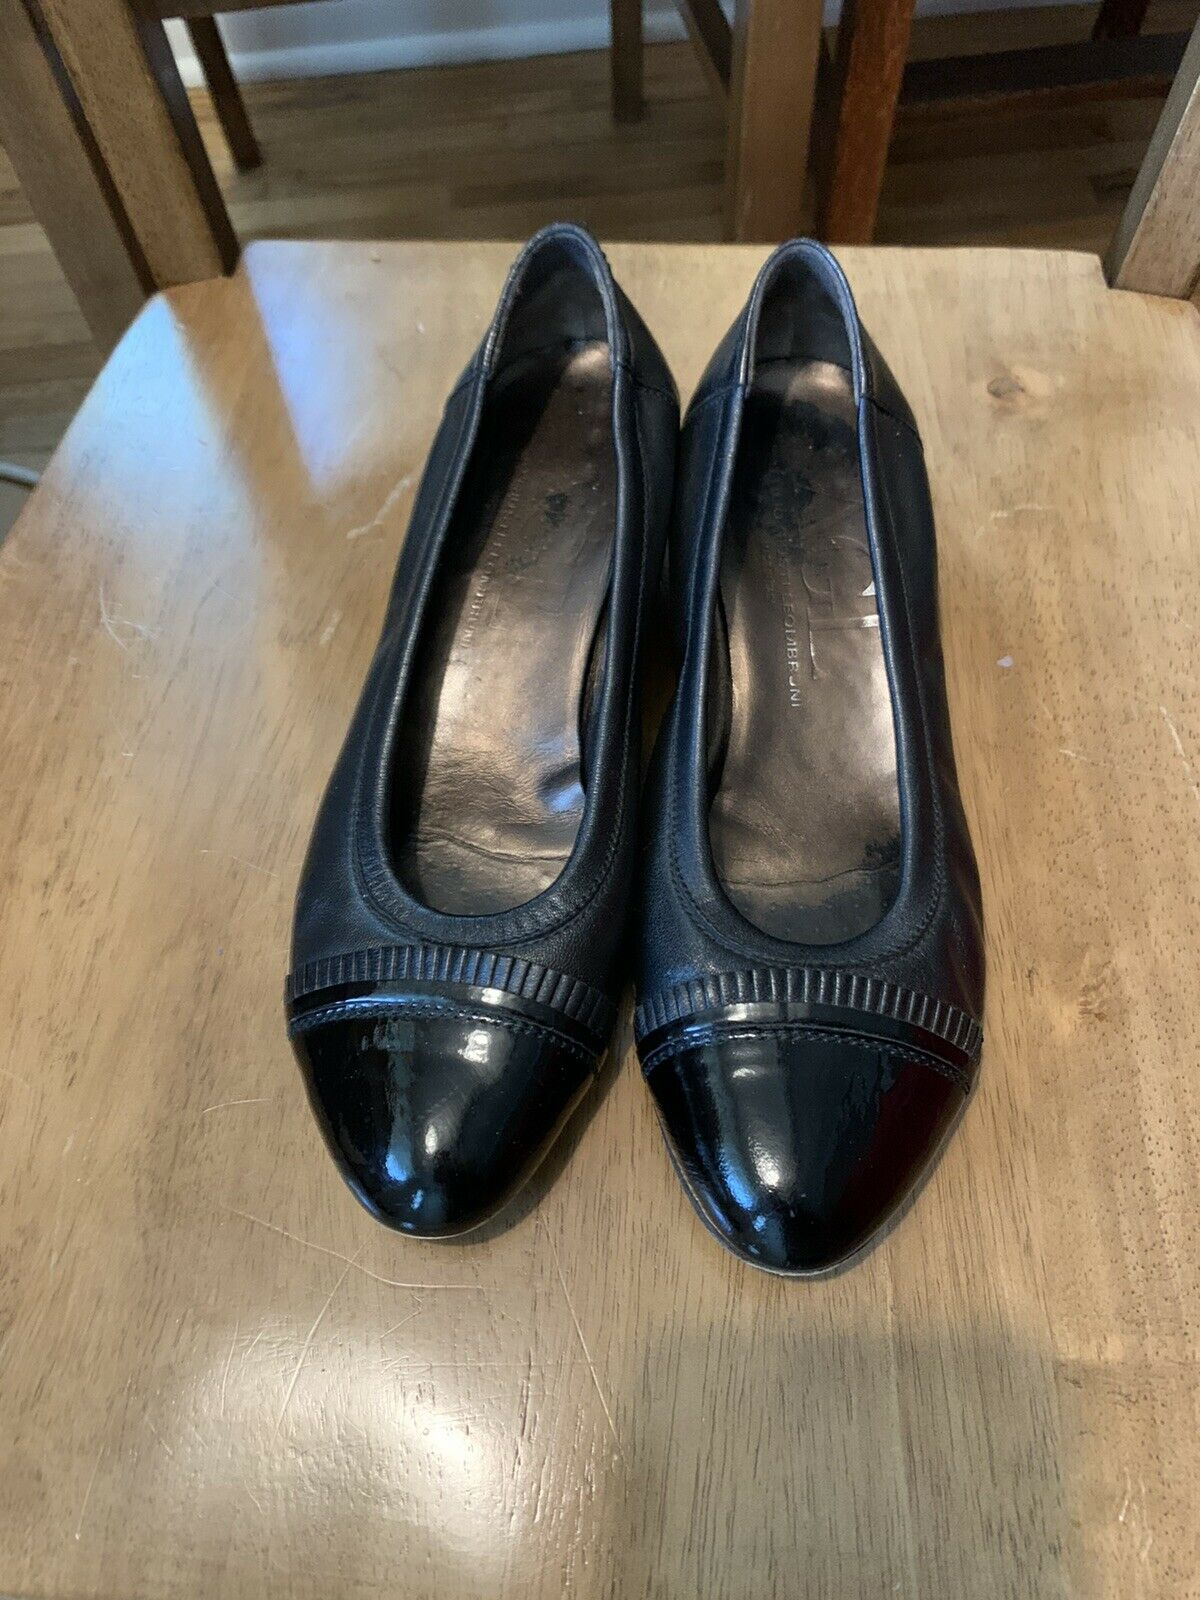 AGL Black Leather Pumps Made In Italy Size 8.5 (38.5 EU)